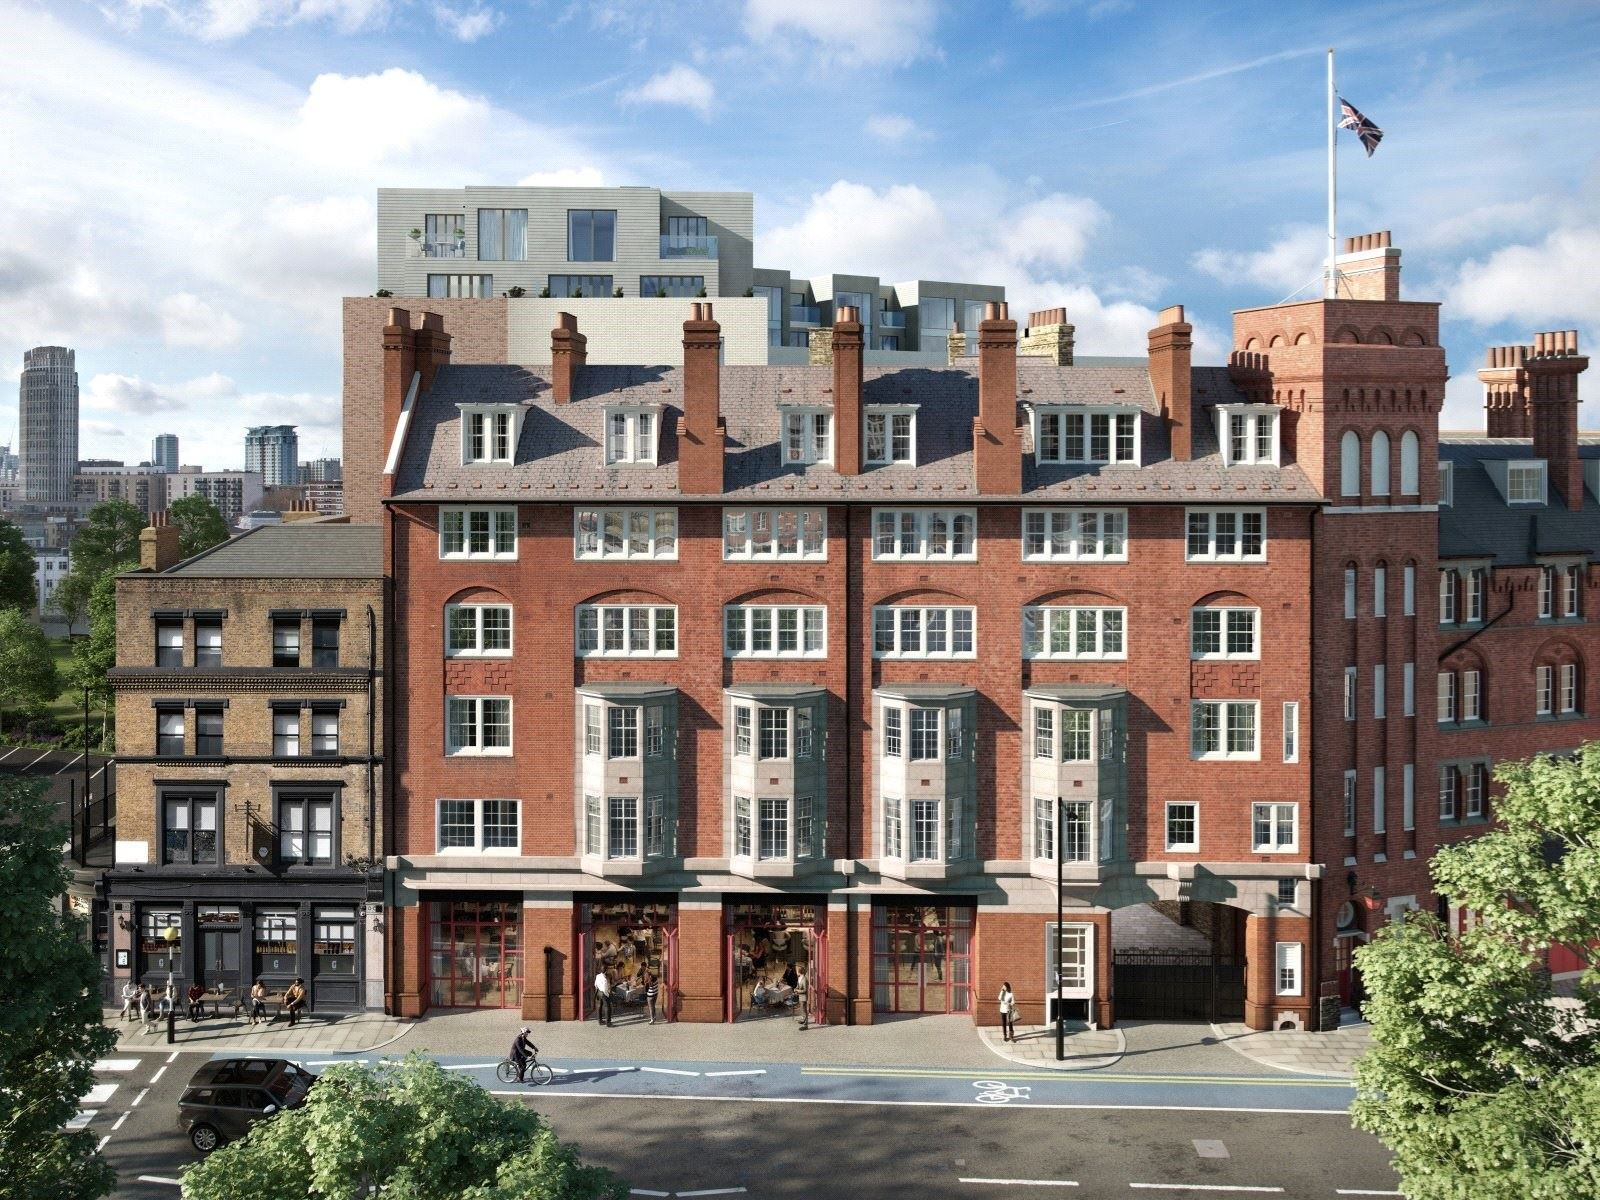 London Architecture: Modern homes available to buy in historic buildings | CBRE Residential